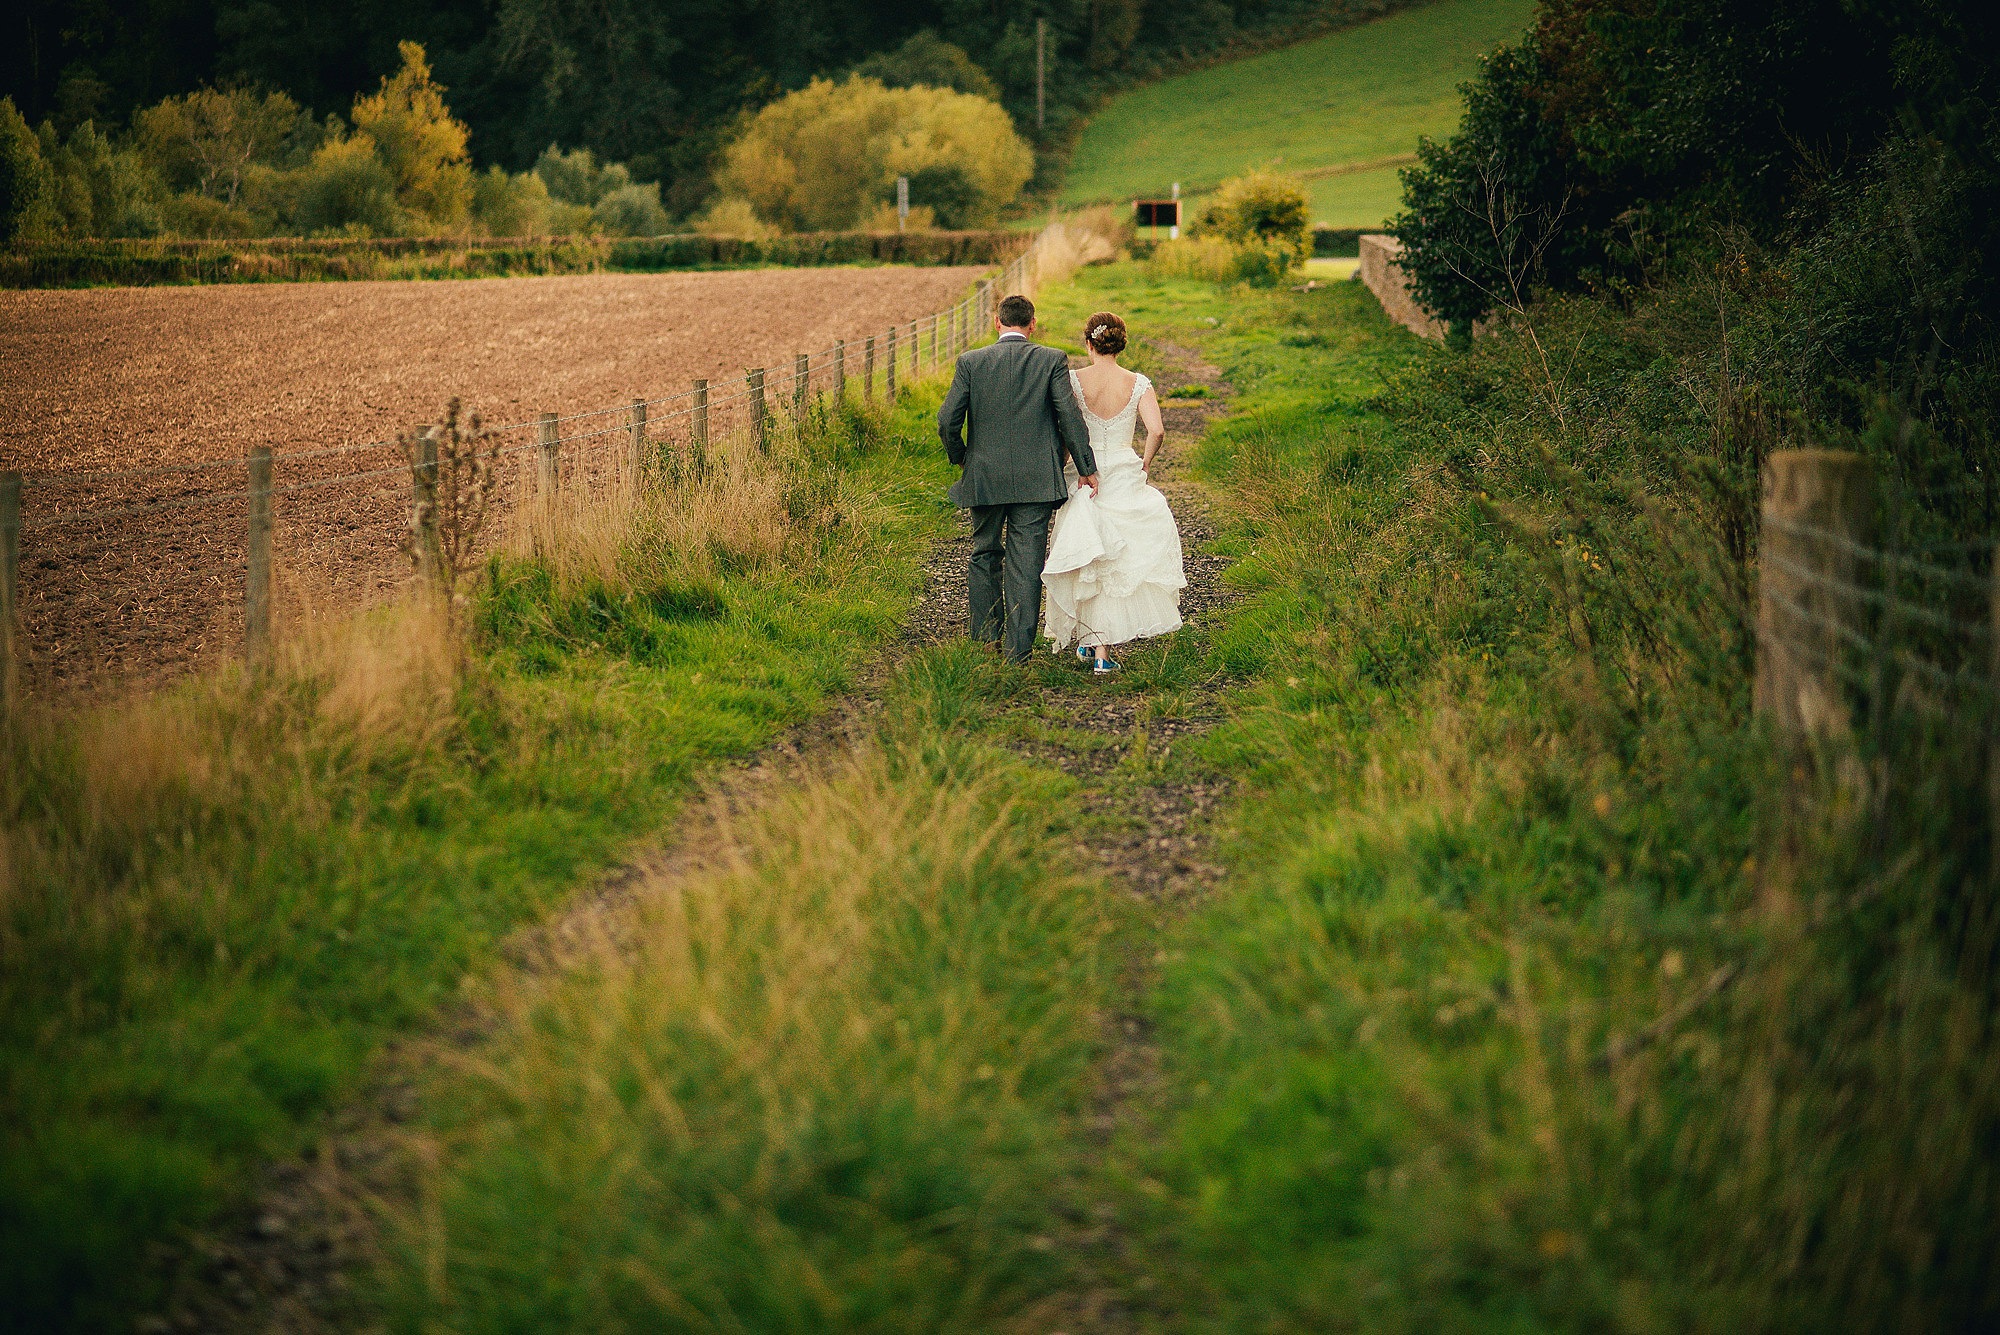 bride and groom in field during golden hour